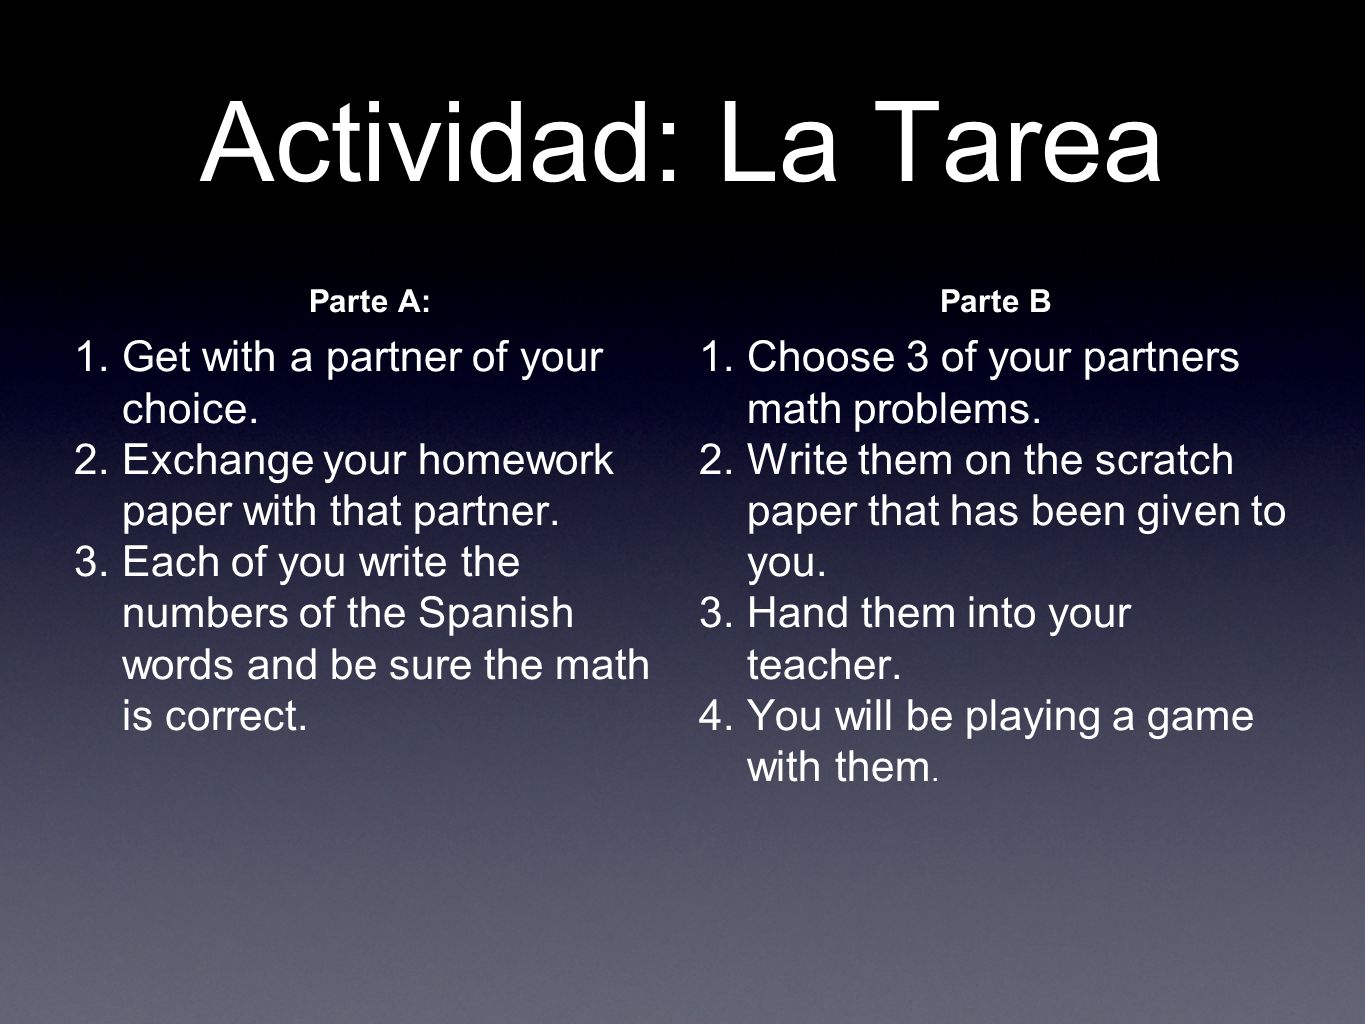 Actividad: La Tarea Parte A: 1.Get with a partner of your choice. 2.Exchange your homework paper with that partner. 3.Each of you write the numbers of